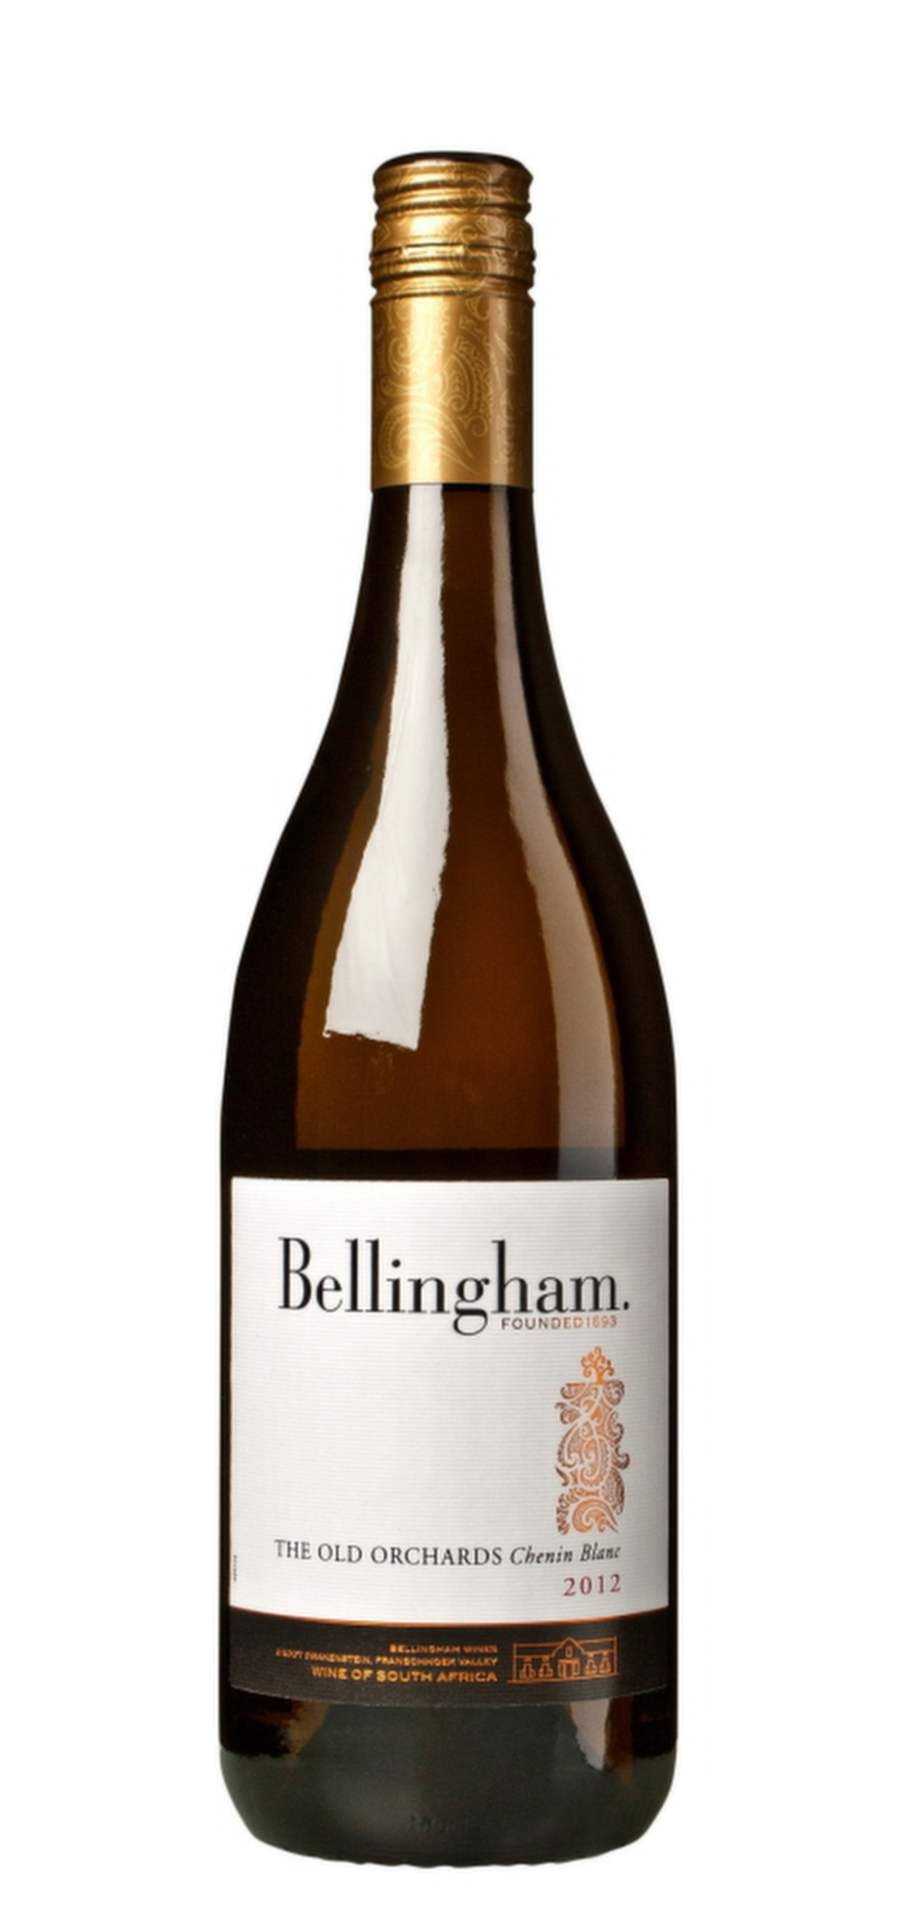 """Bellingham The Old Orchards Chenin Blanc 2013 (2051) Paarl, 99 kr<br><exp:icon type=""""wasp""""></exp:icon><exp:icon type=""""wasp""""></exp:icon><exp:icon type=""""wasp""""></exp:icon>"""